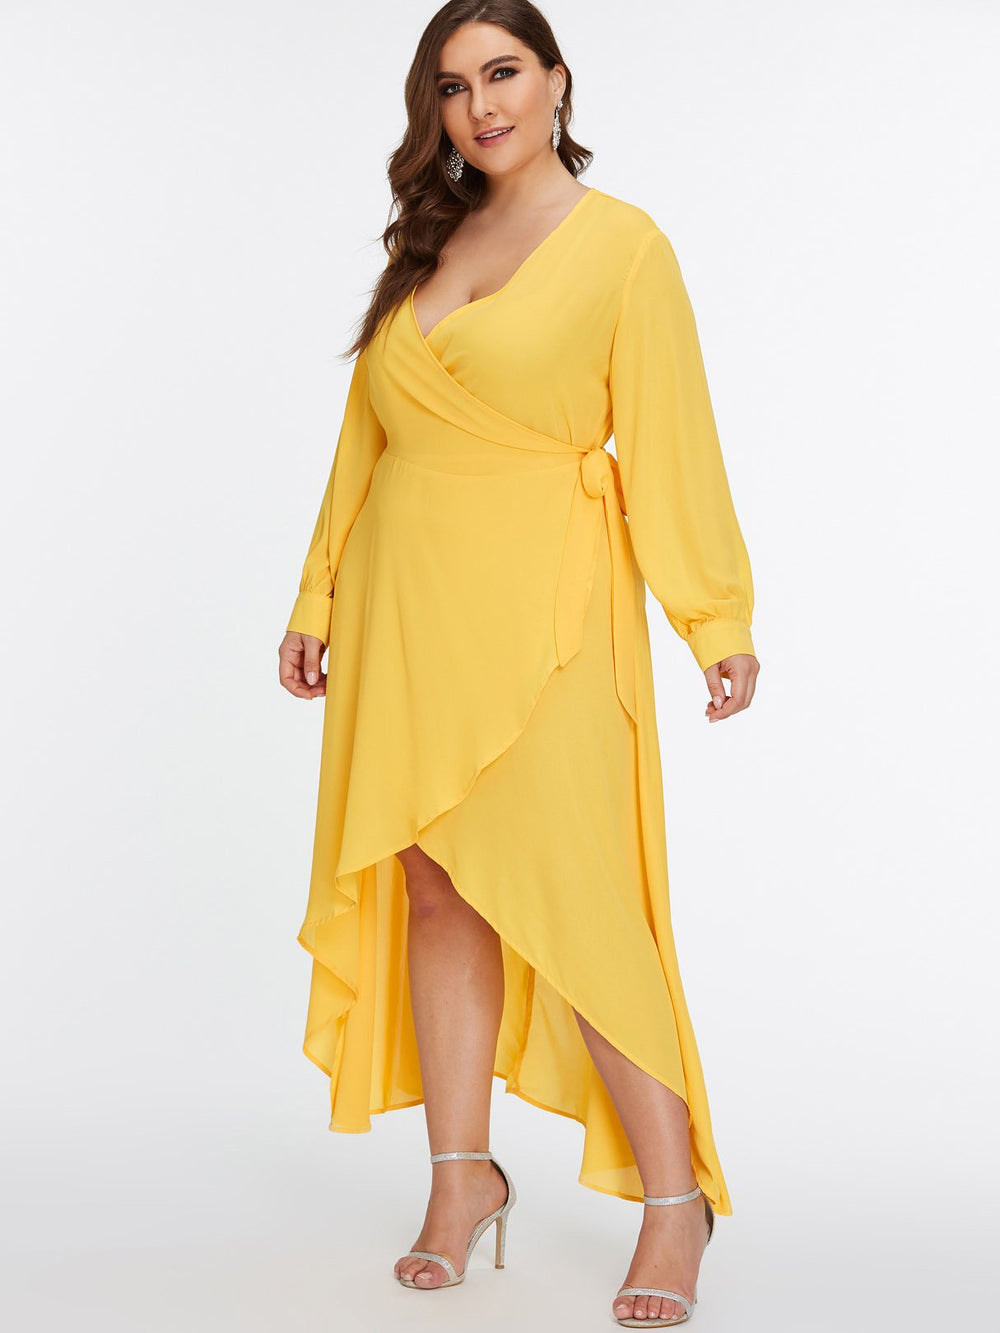 Ladies Yellow Plus Size Dresses